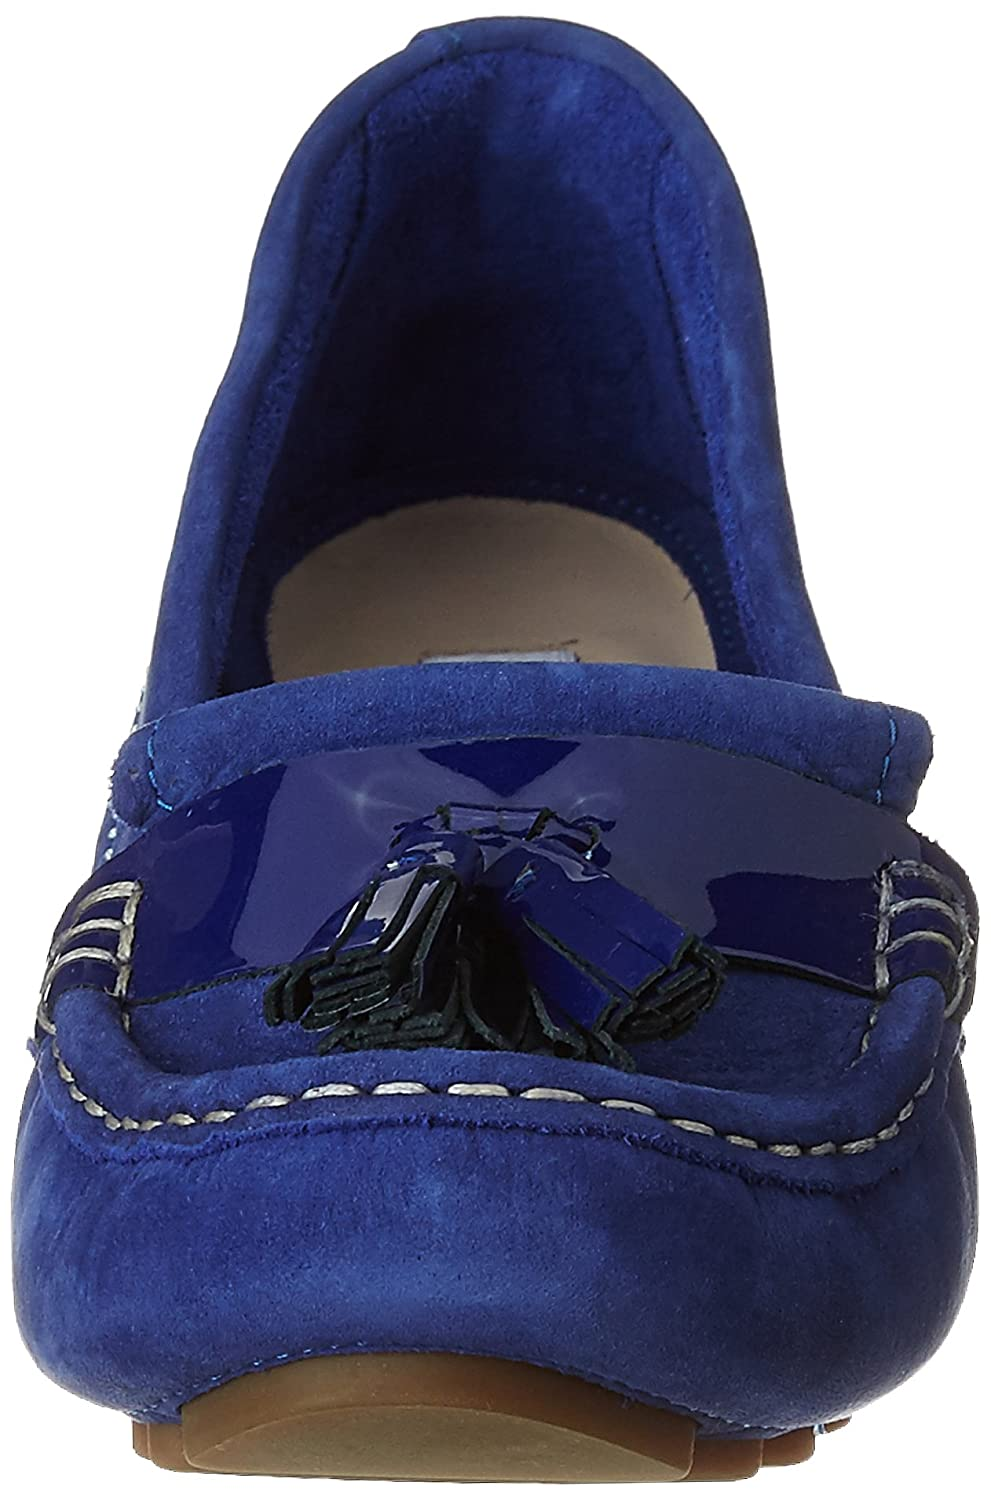 56f3c55da7f Clarks Women s Leather Loafers  Buy Online at Low Prices in India -  Amazon.in